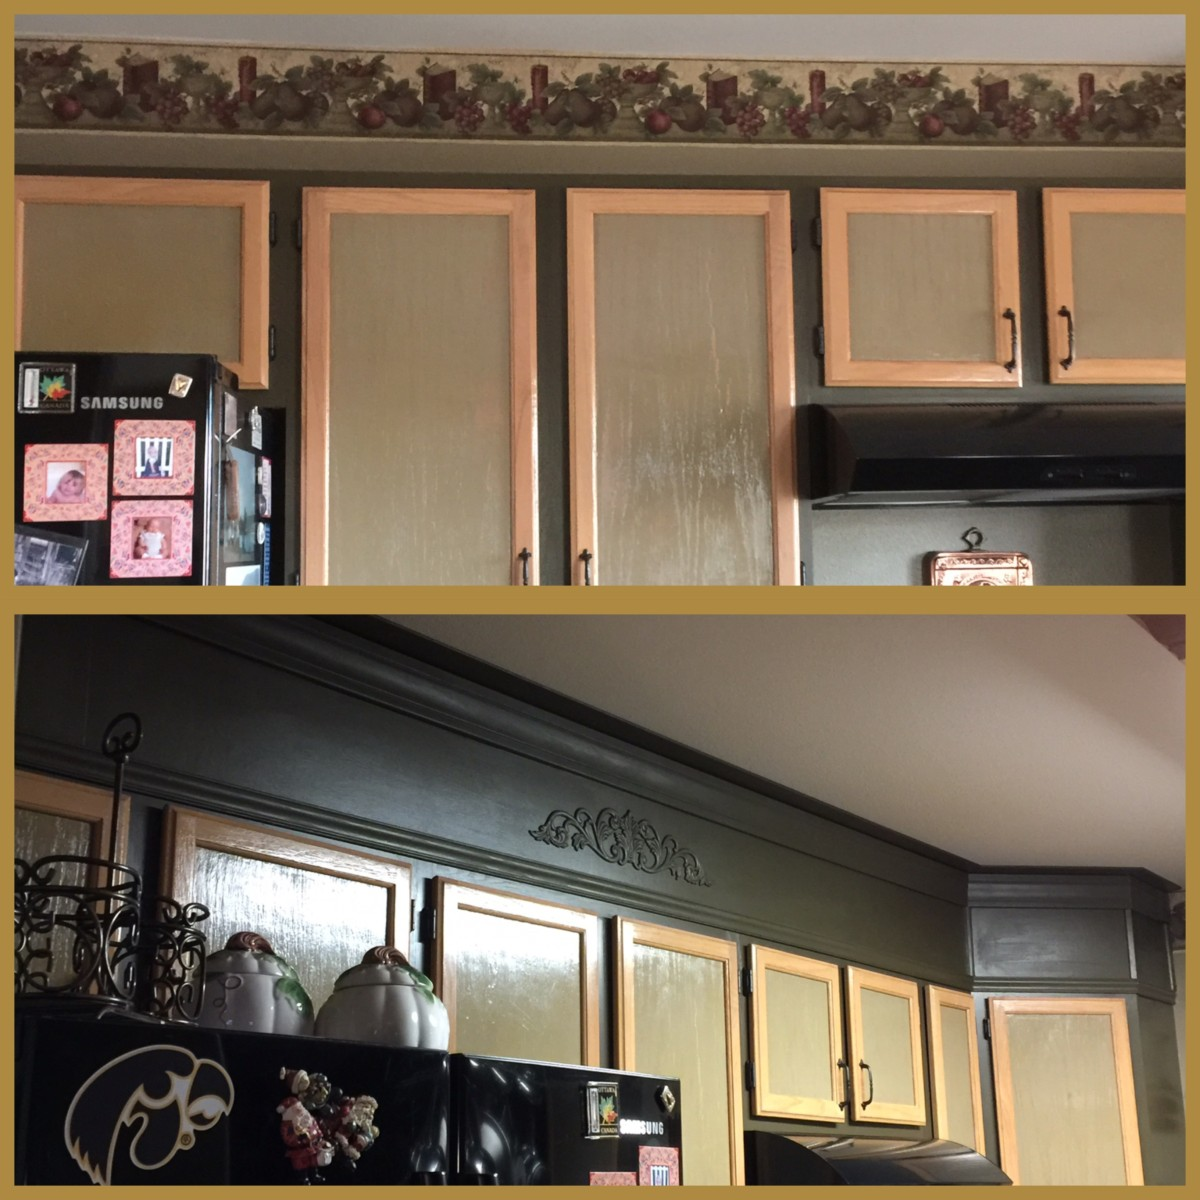 Space Above Kitchen Cabinets: Update The Space Above Kitchen Cabinets